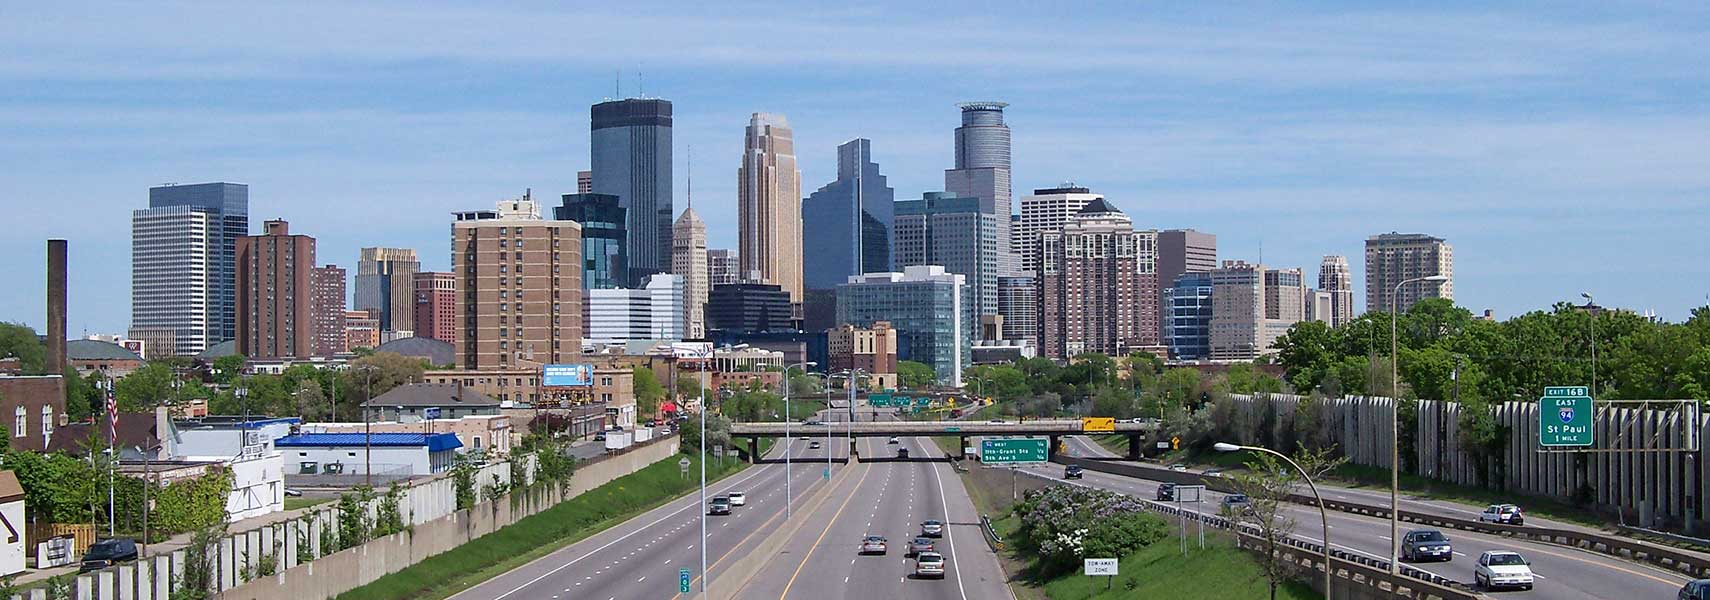 Google Map of the City of Minneapolis  Minnesota  USA   Nations         Searchable Map and Satellite View of the City of Minneapolis  Minnesota   45 degree view available